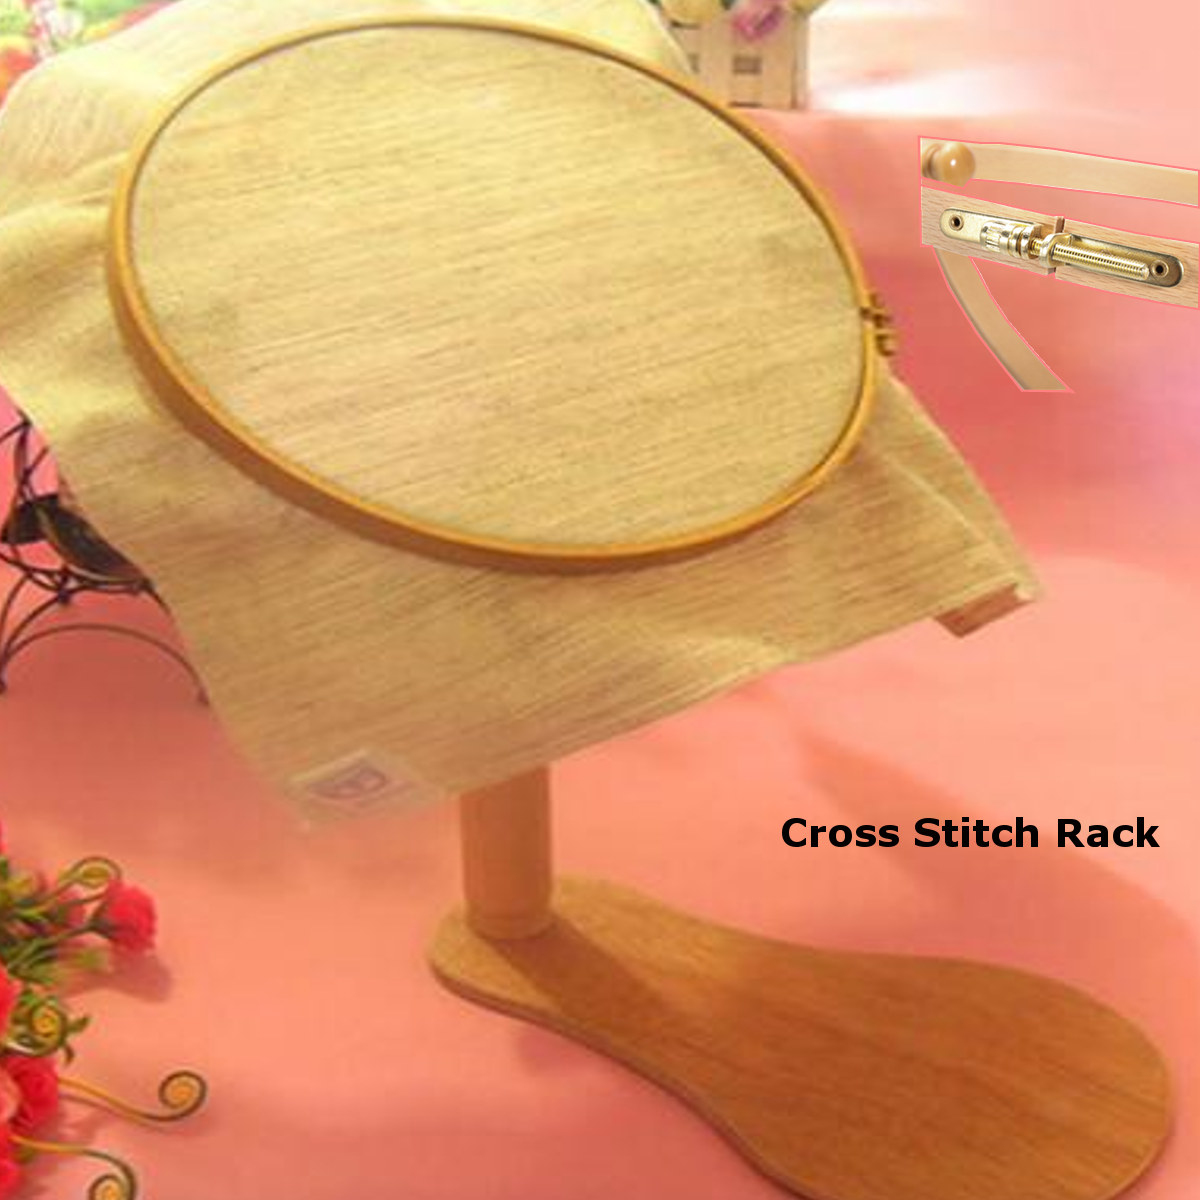 Embroidery Hoop Stands